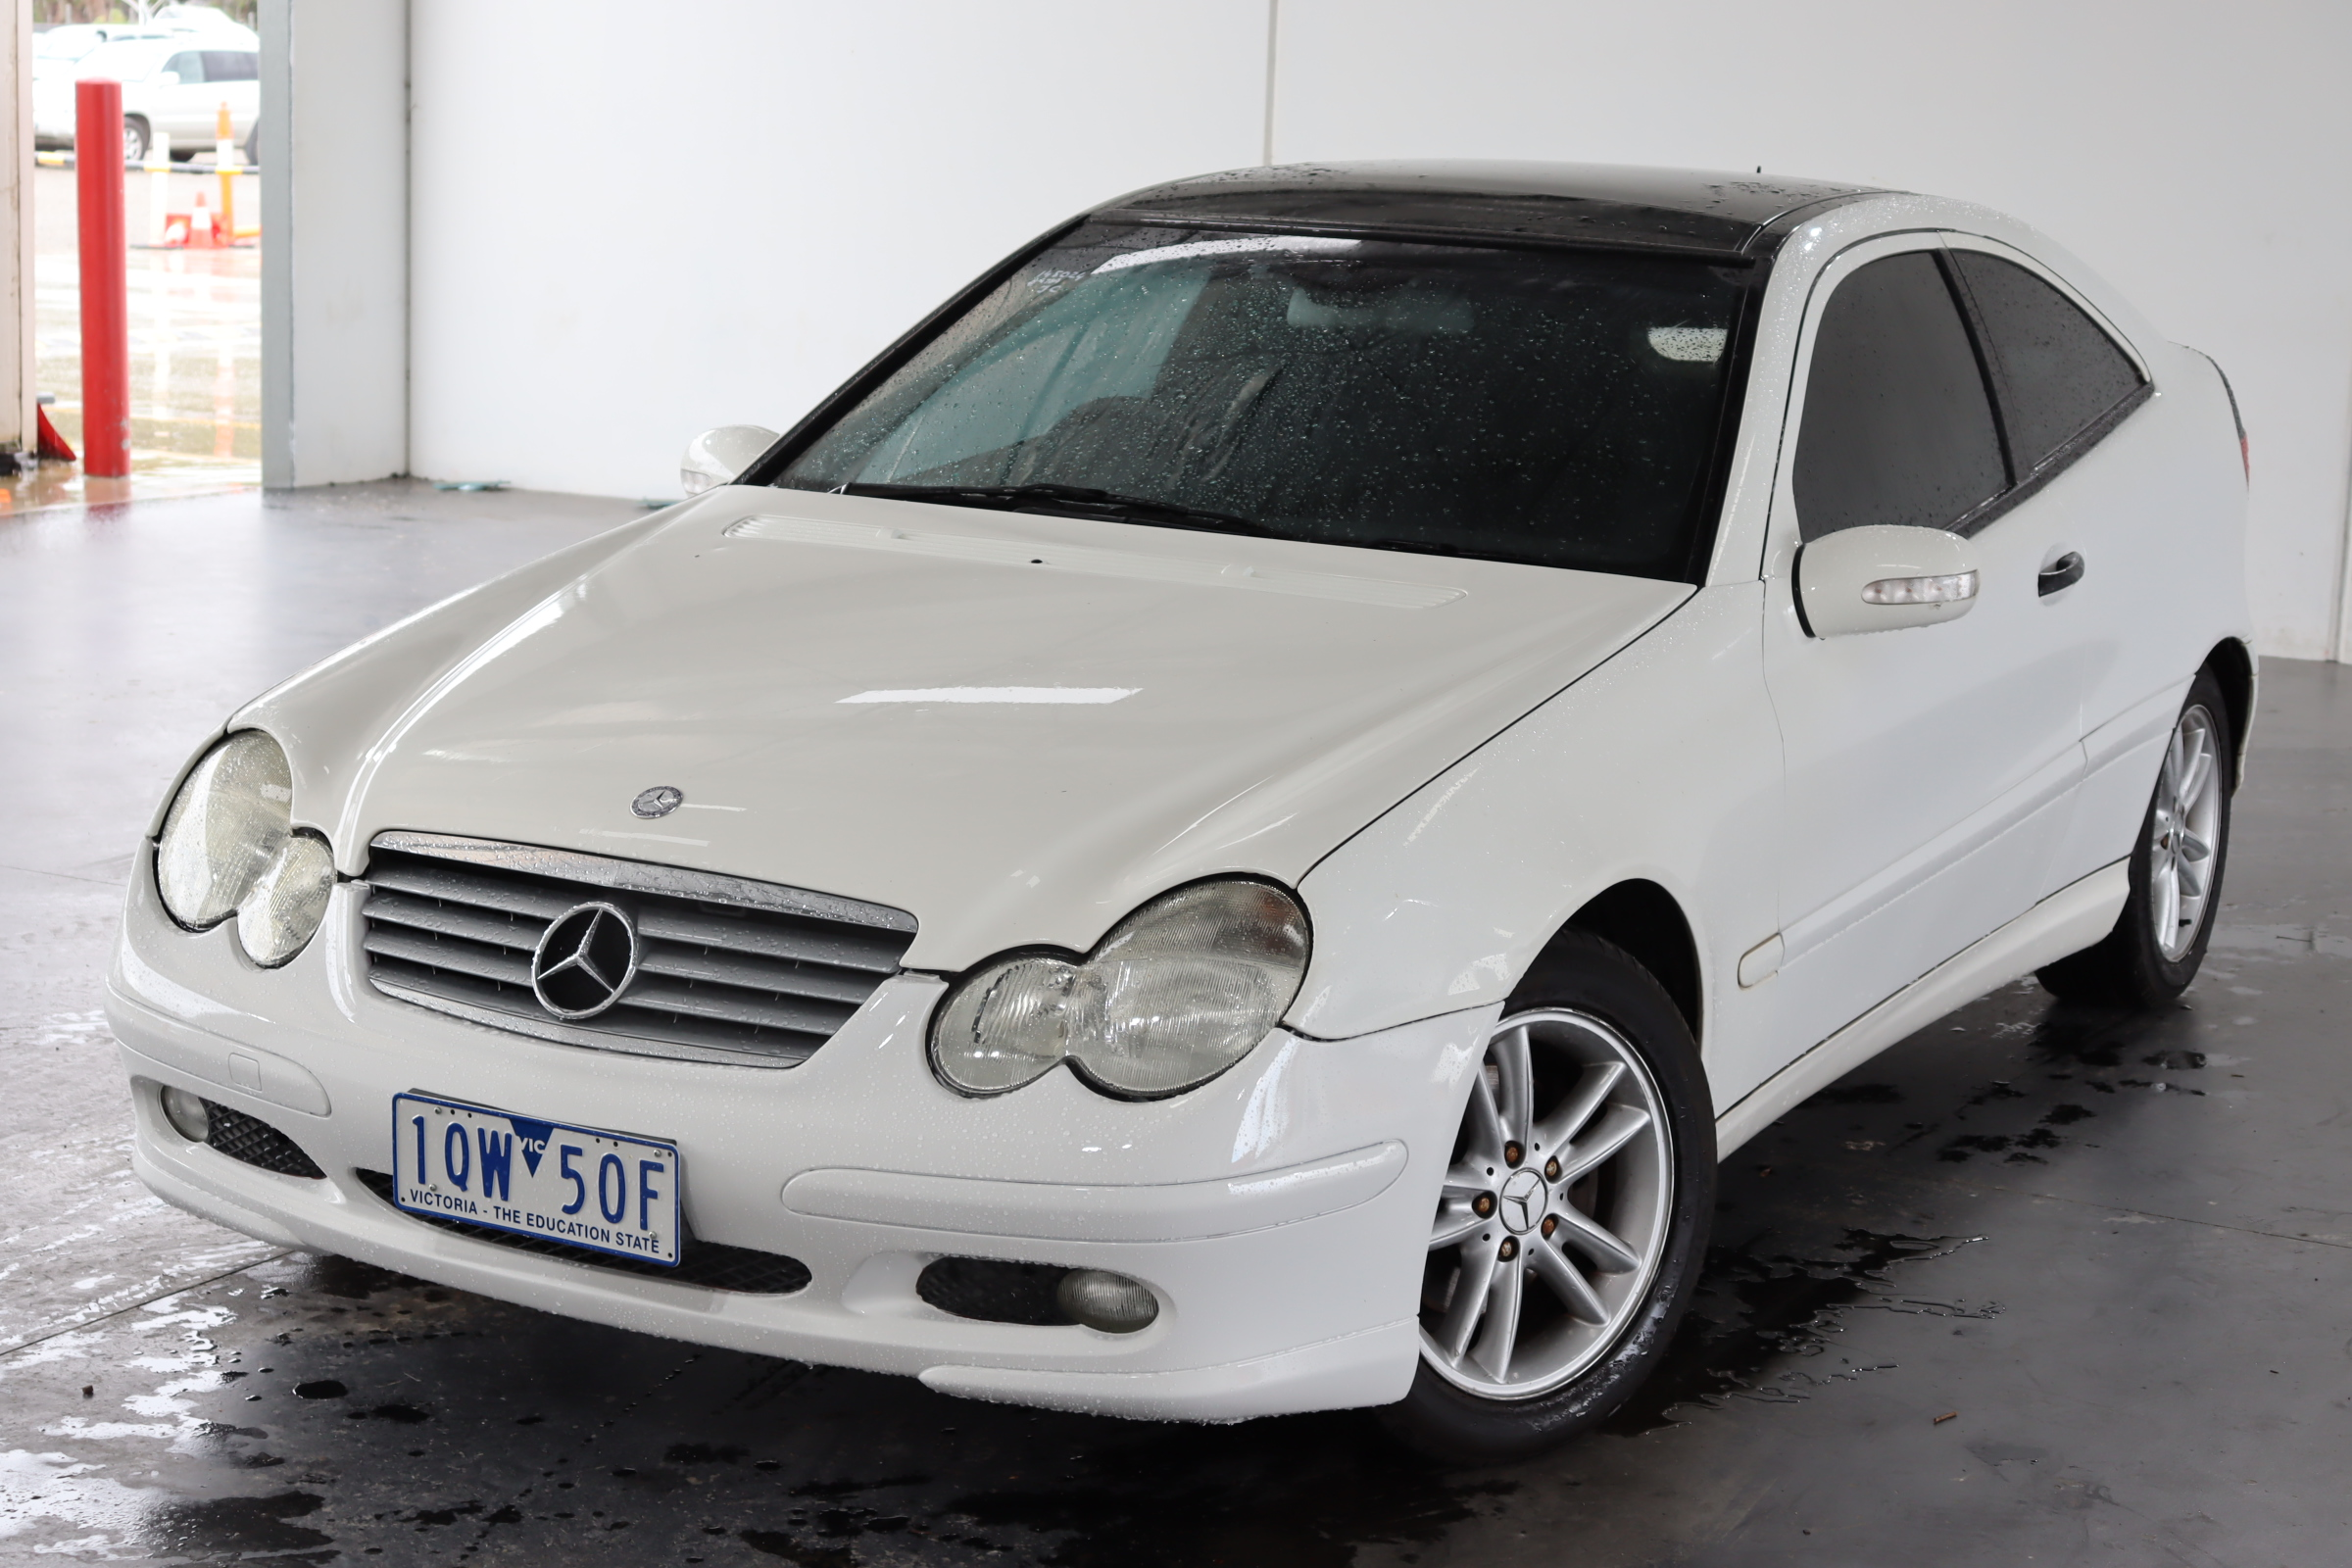 2001 Mercedes Benz C200 Kompressor CL203 Automatic Coupe